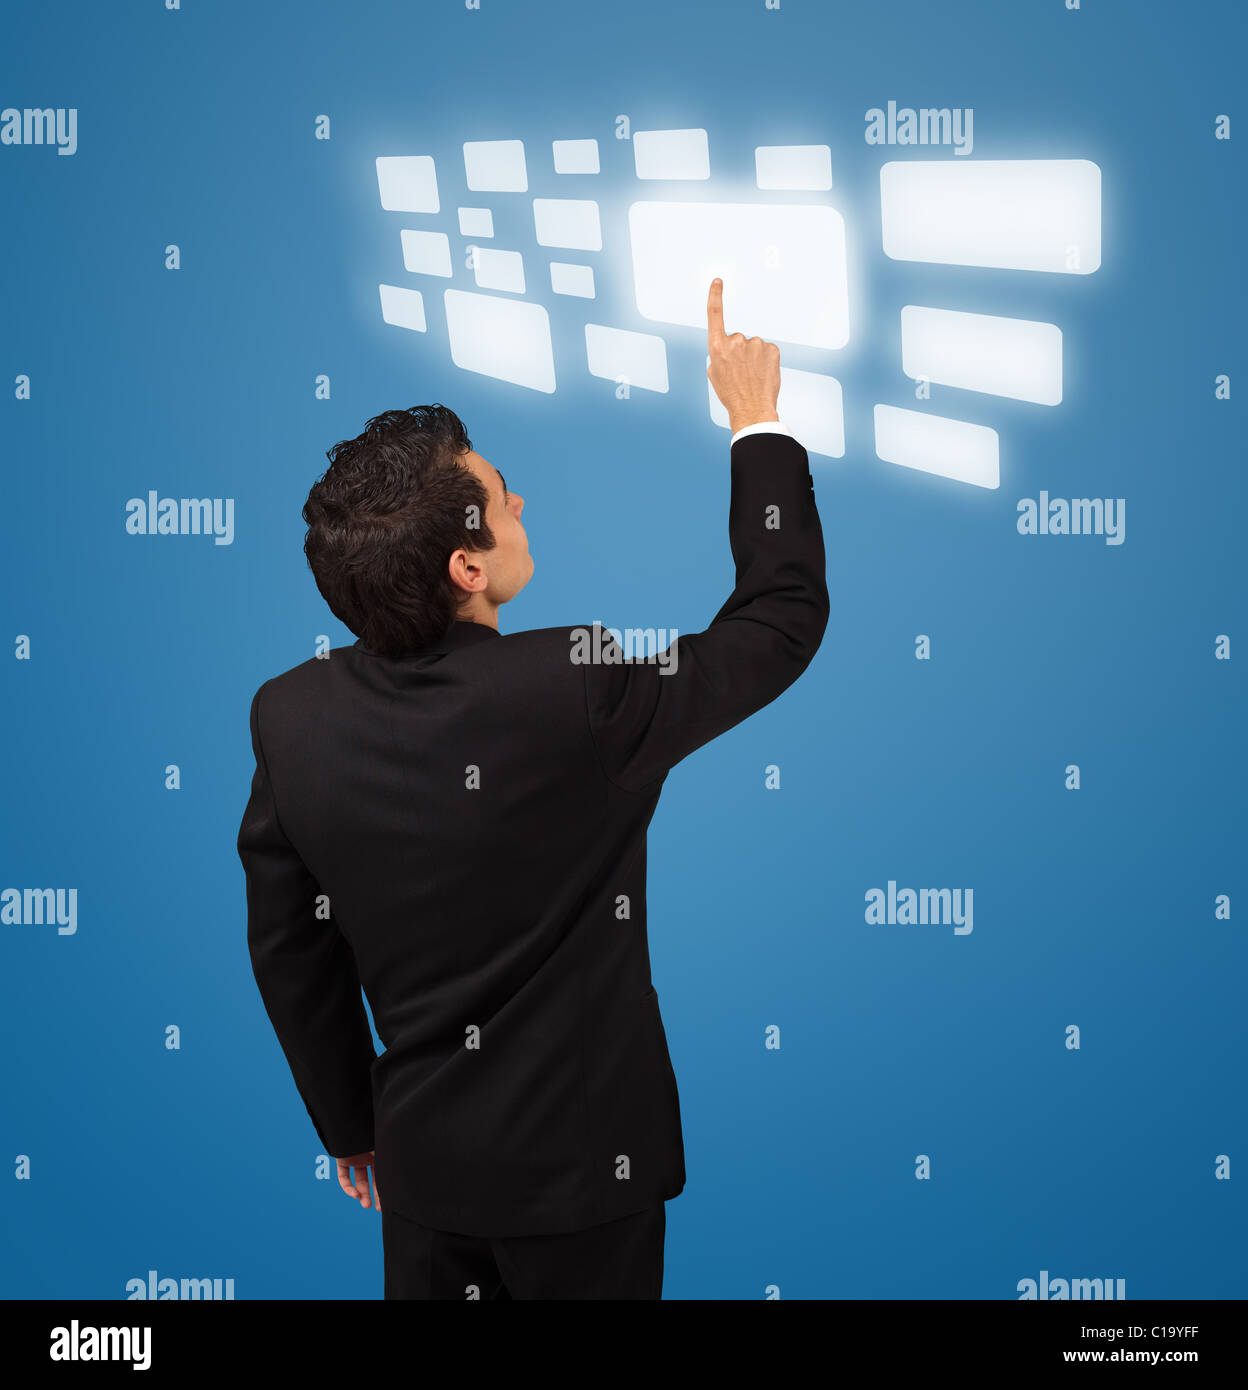 Business man pressing a touchscreen button - Stock Image